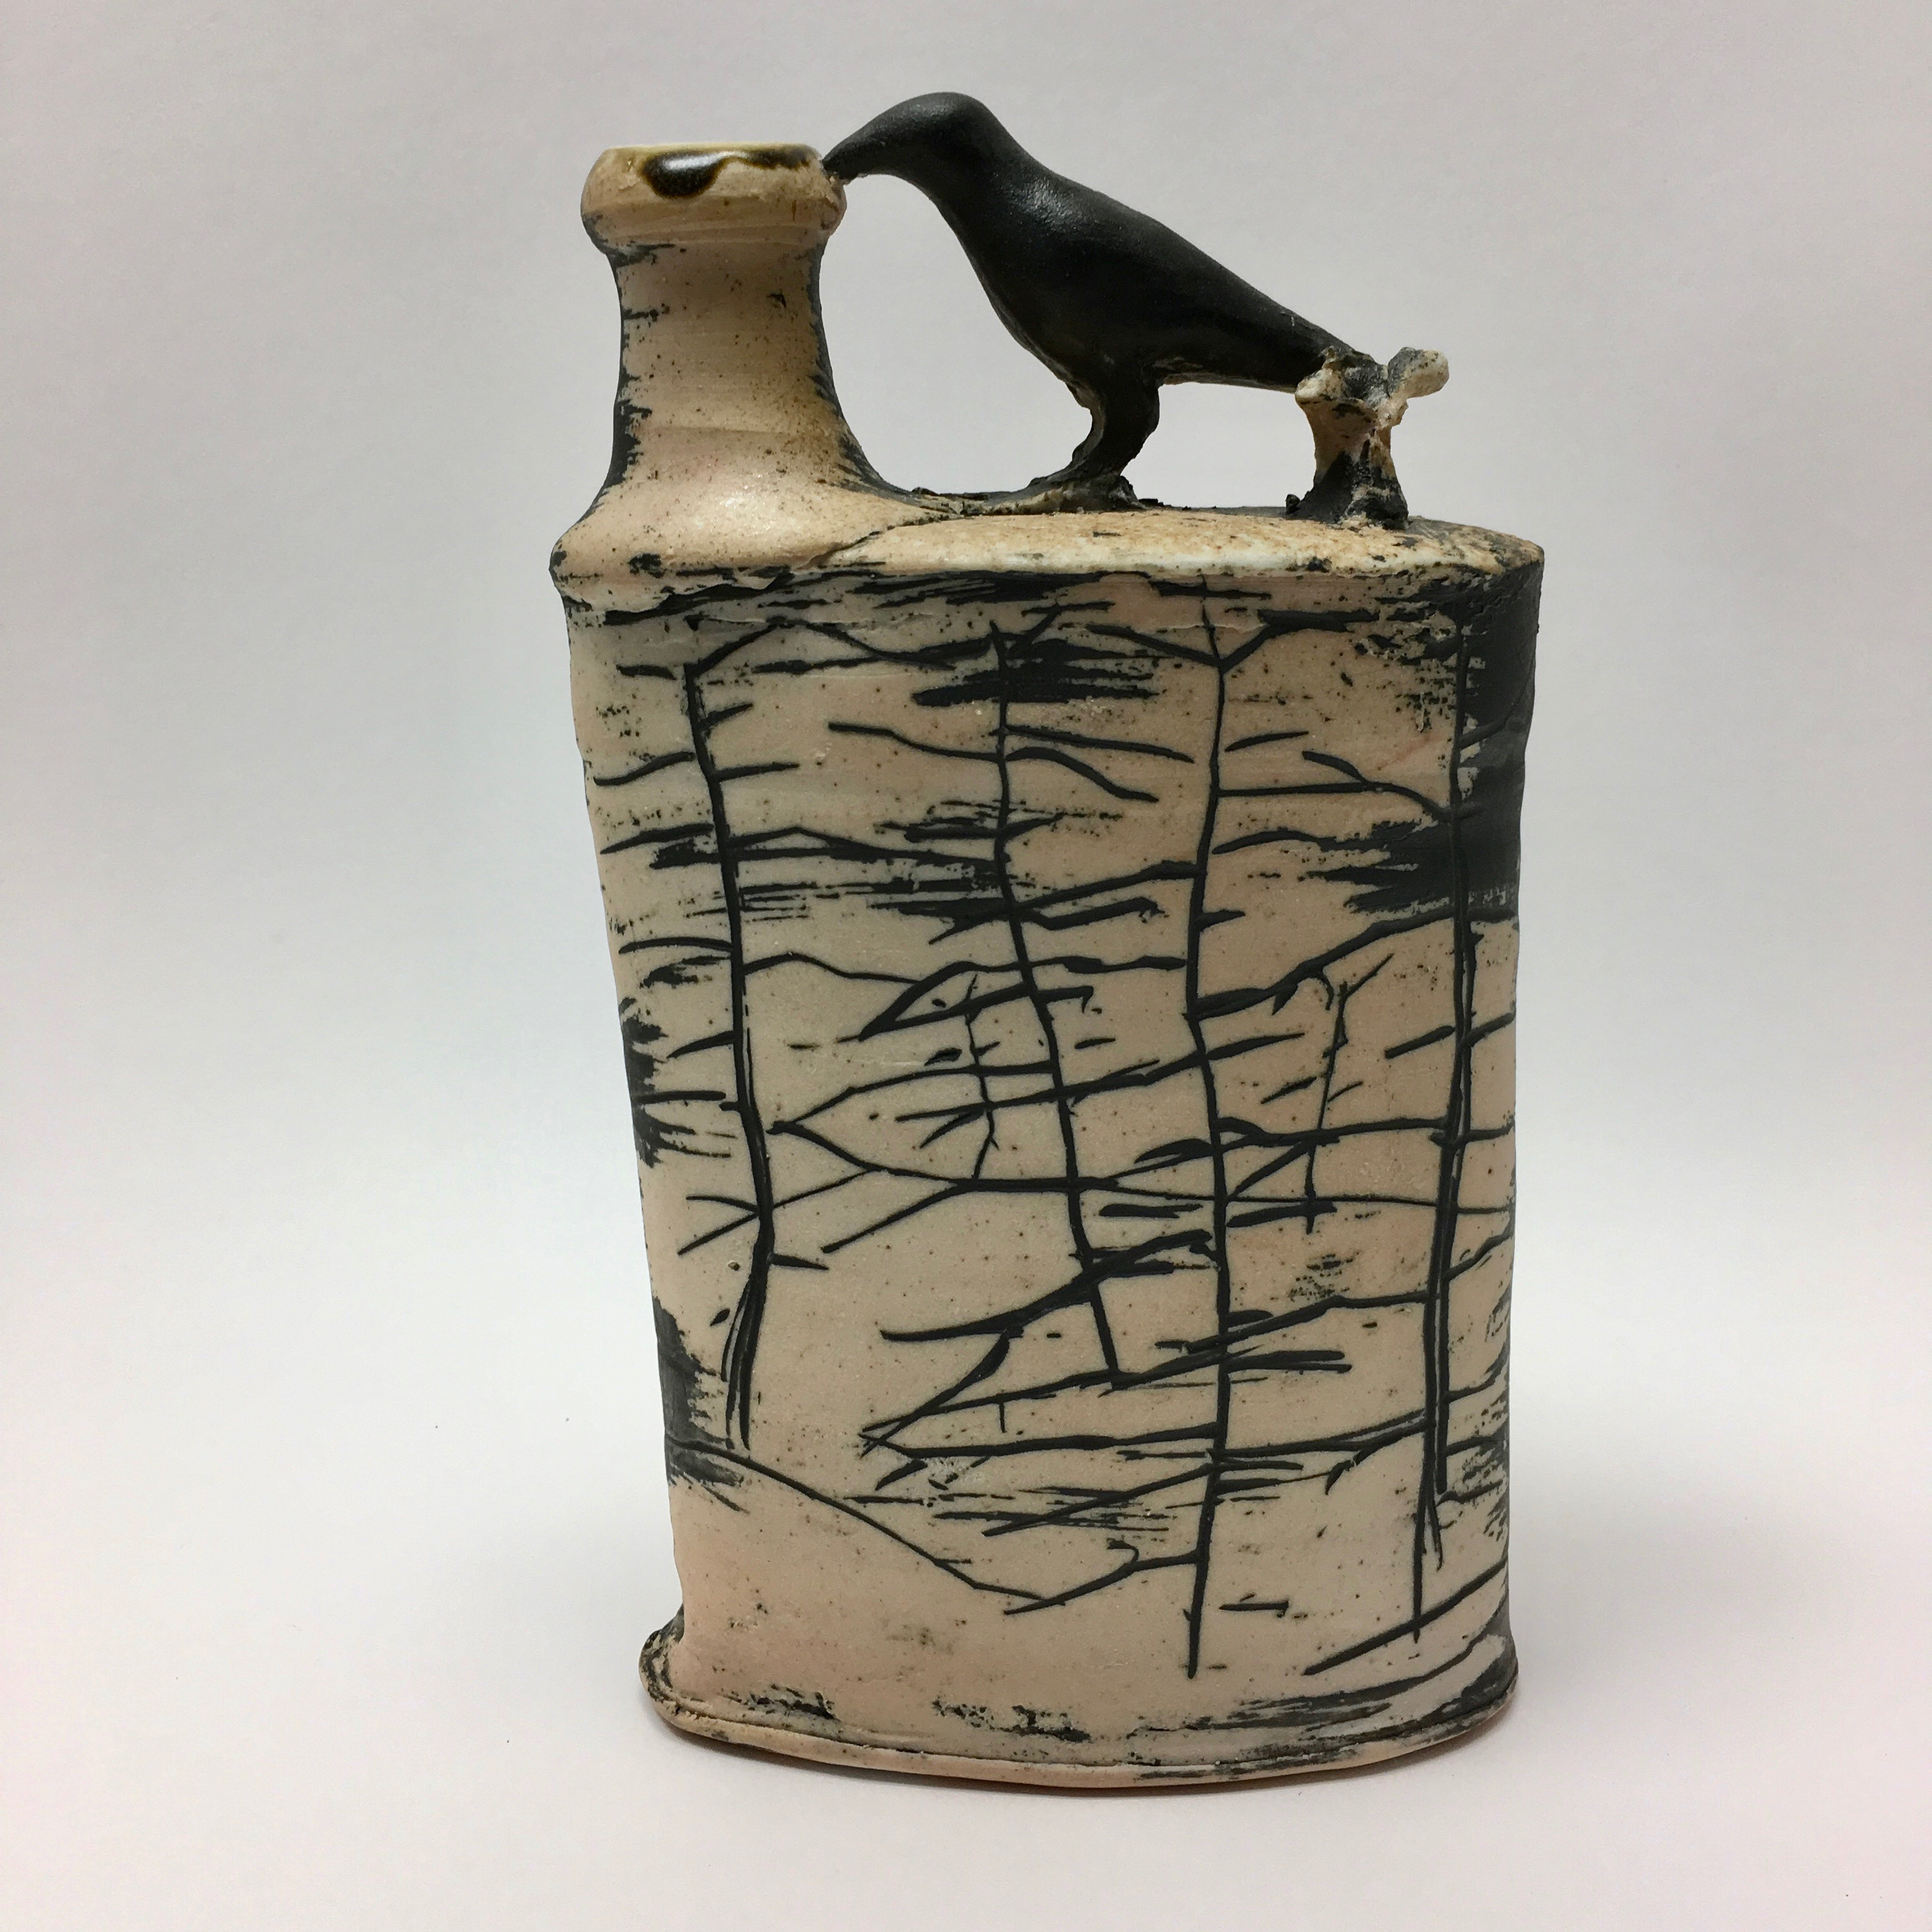 Wood fired flask by ceramic artist David Ernster. Fill with a beverage or enjoy as ornamental pottery. Black line tree design with a crow on top available at the Littelton League GAllery 81 MAin St Littelton NH